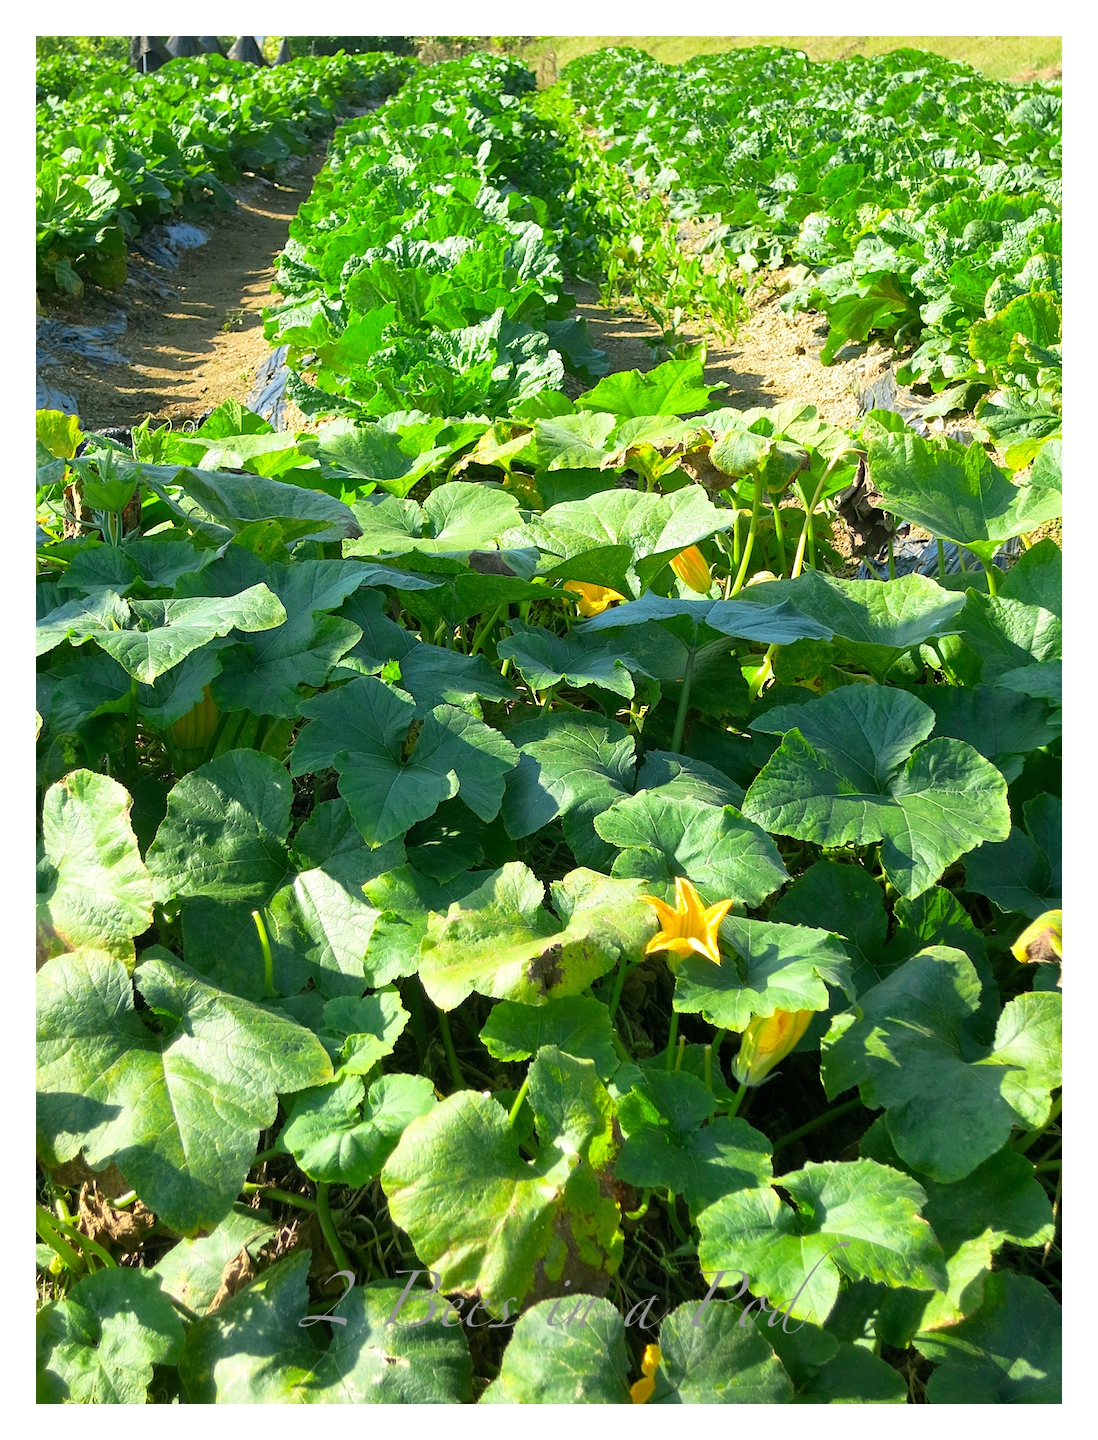 South Koreans do not have lawns - they have beautiful gardens of food,